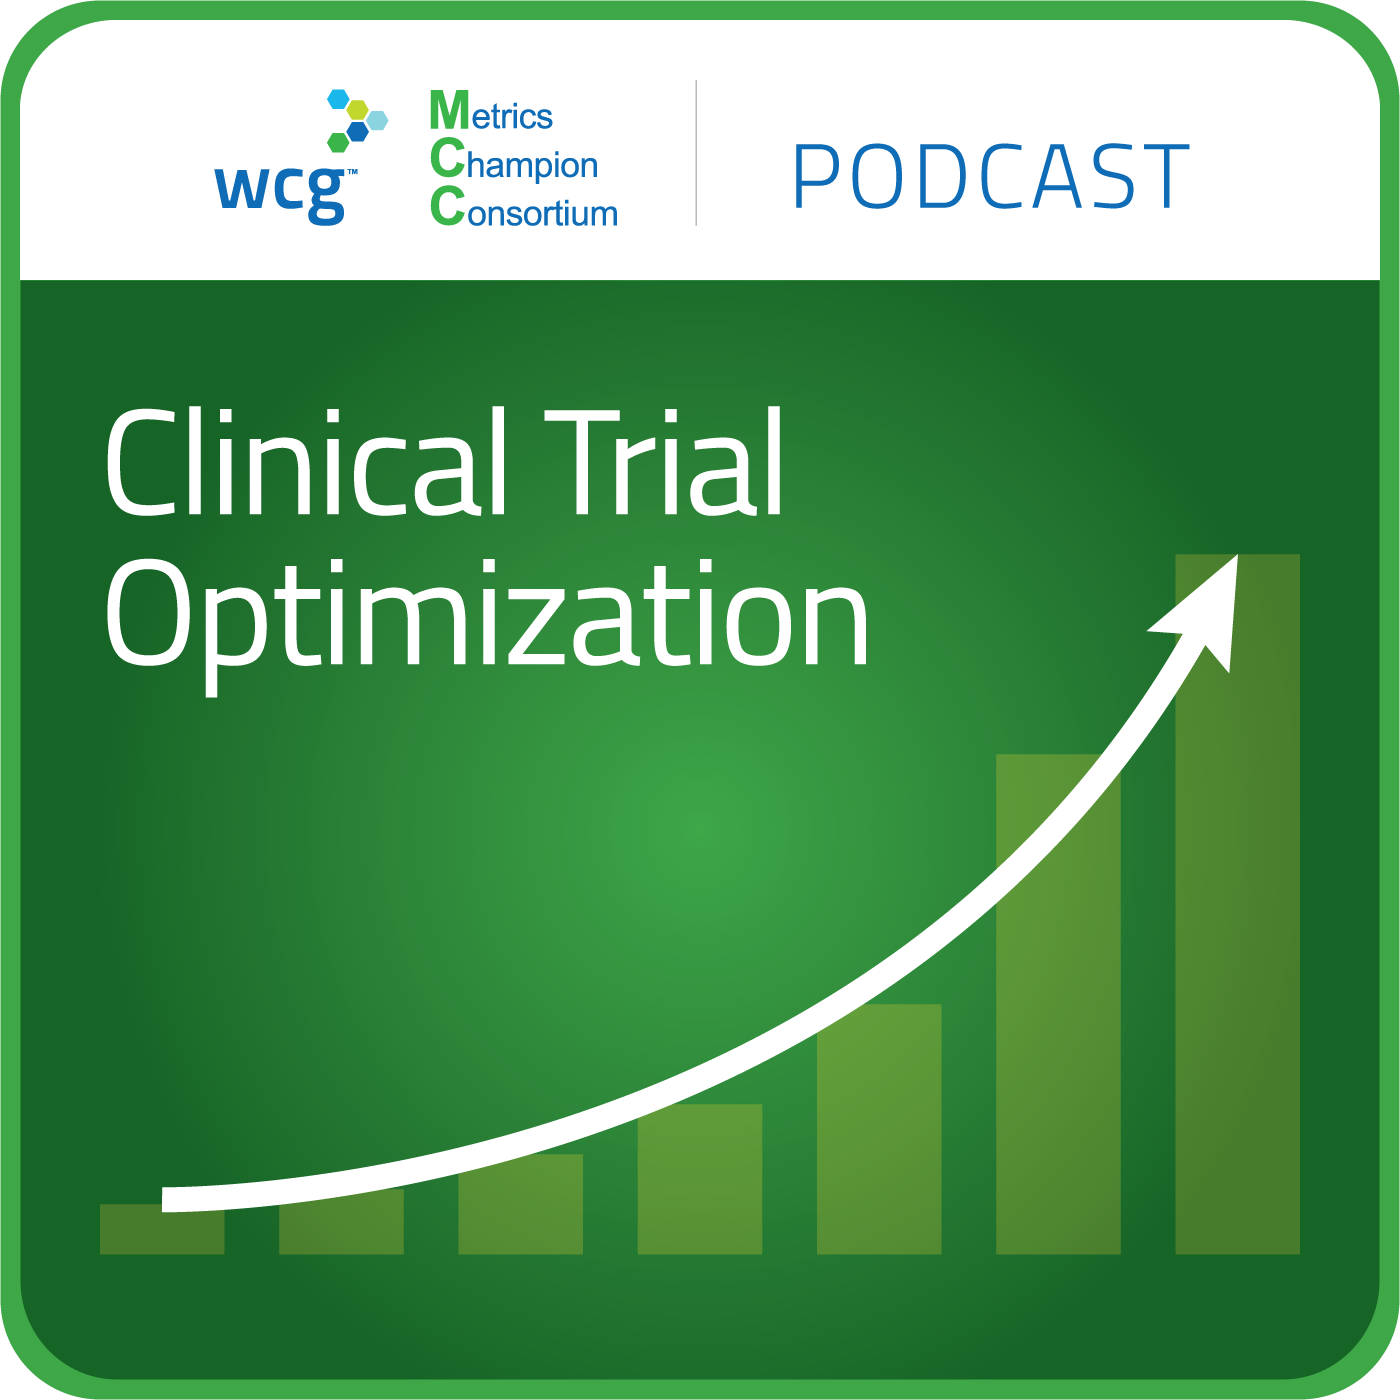 Clinical Trial Optimization